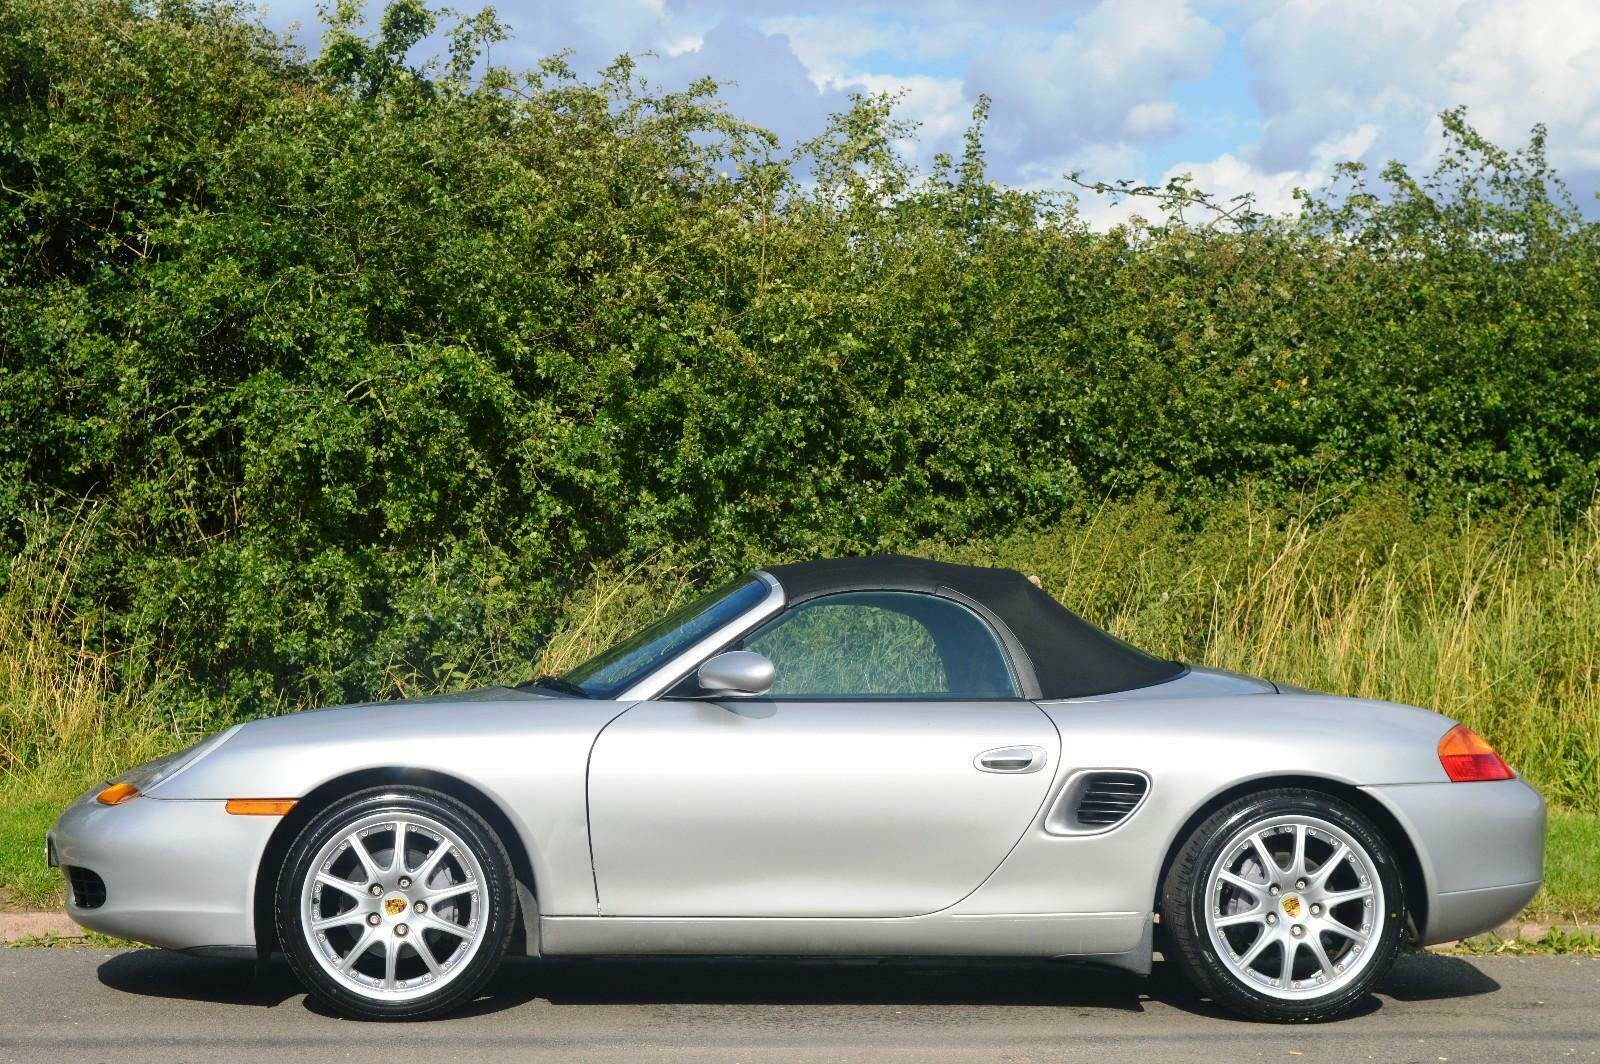 1998 Porsche Boxster 986 2.5 Manual Petrol Convertible F.S.H SOLD (picture 3 of 6)